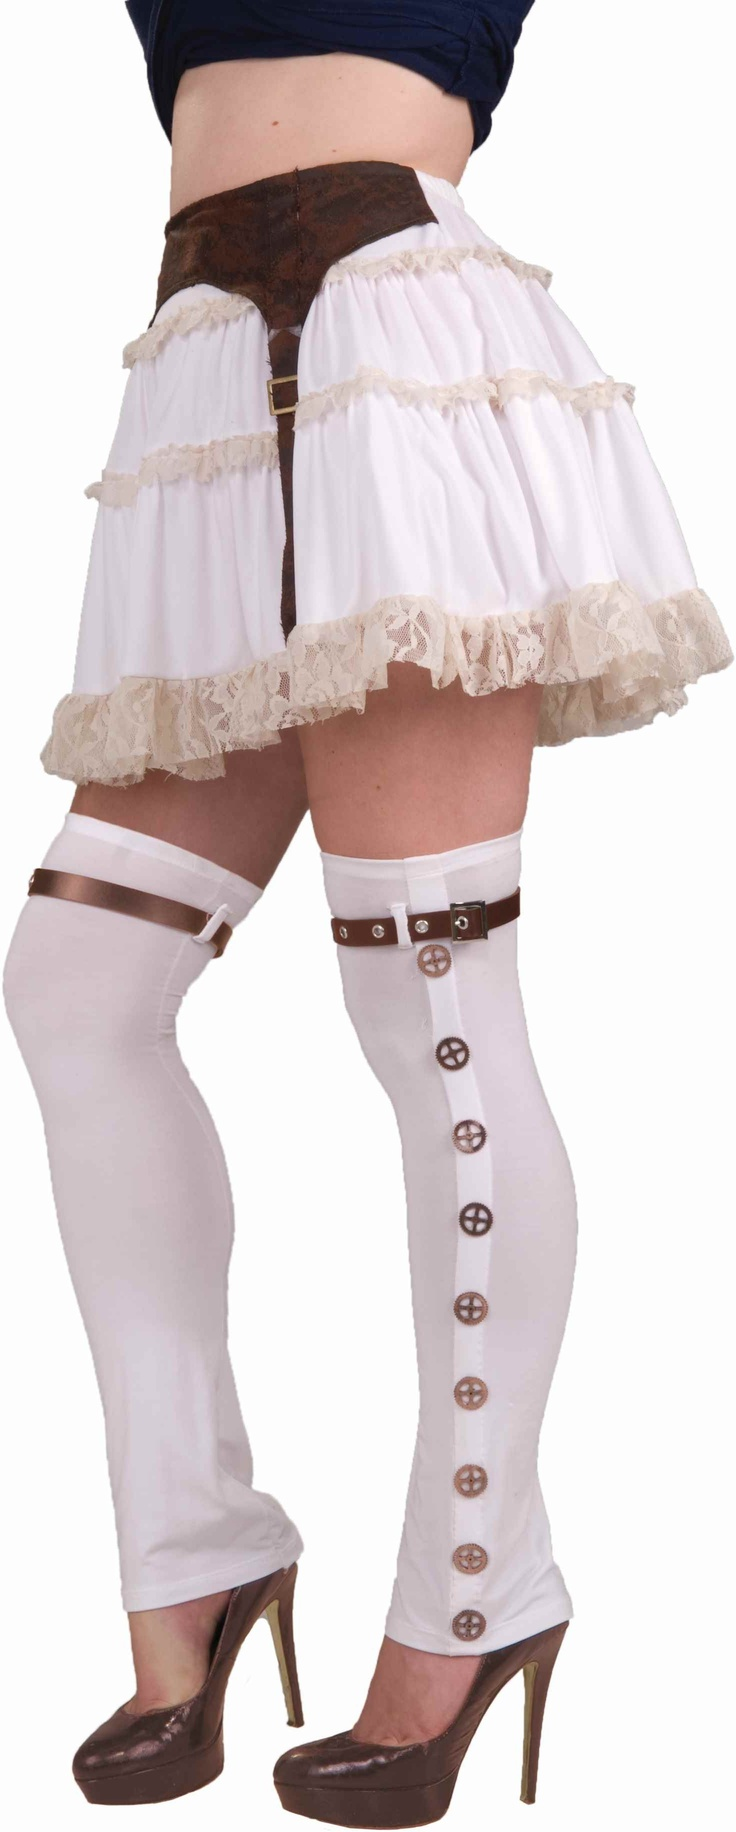 Steampunk White Buckled Spats - Steampunk Clothing, Costumes & Accessories at Escapade™ UK - Escapade Fancy Dress on Twitter: @Escapade_UK